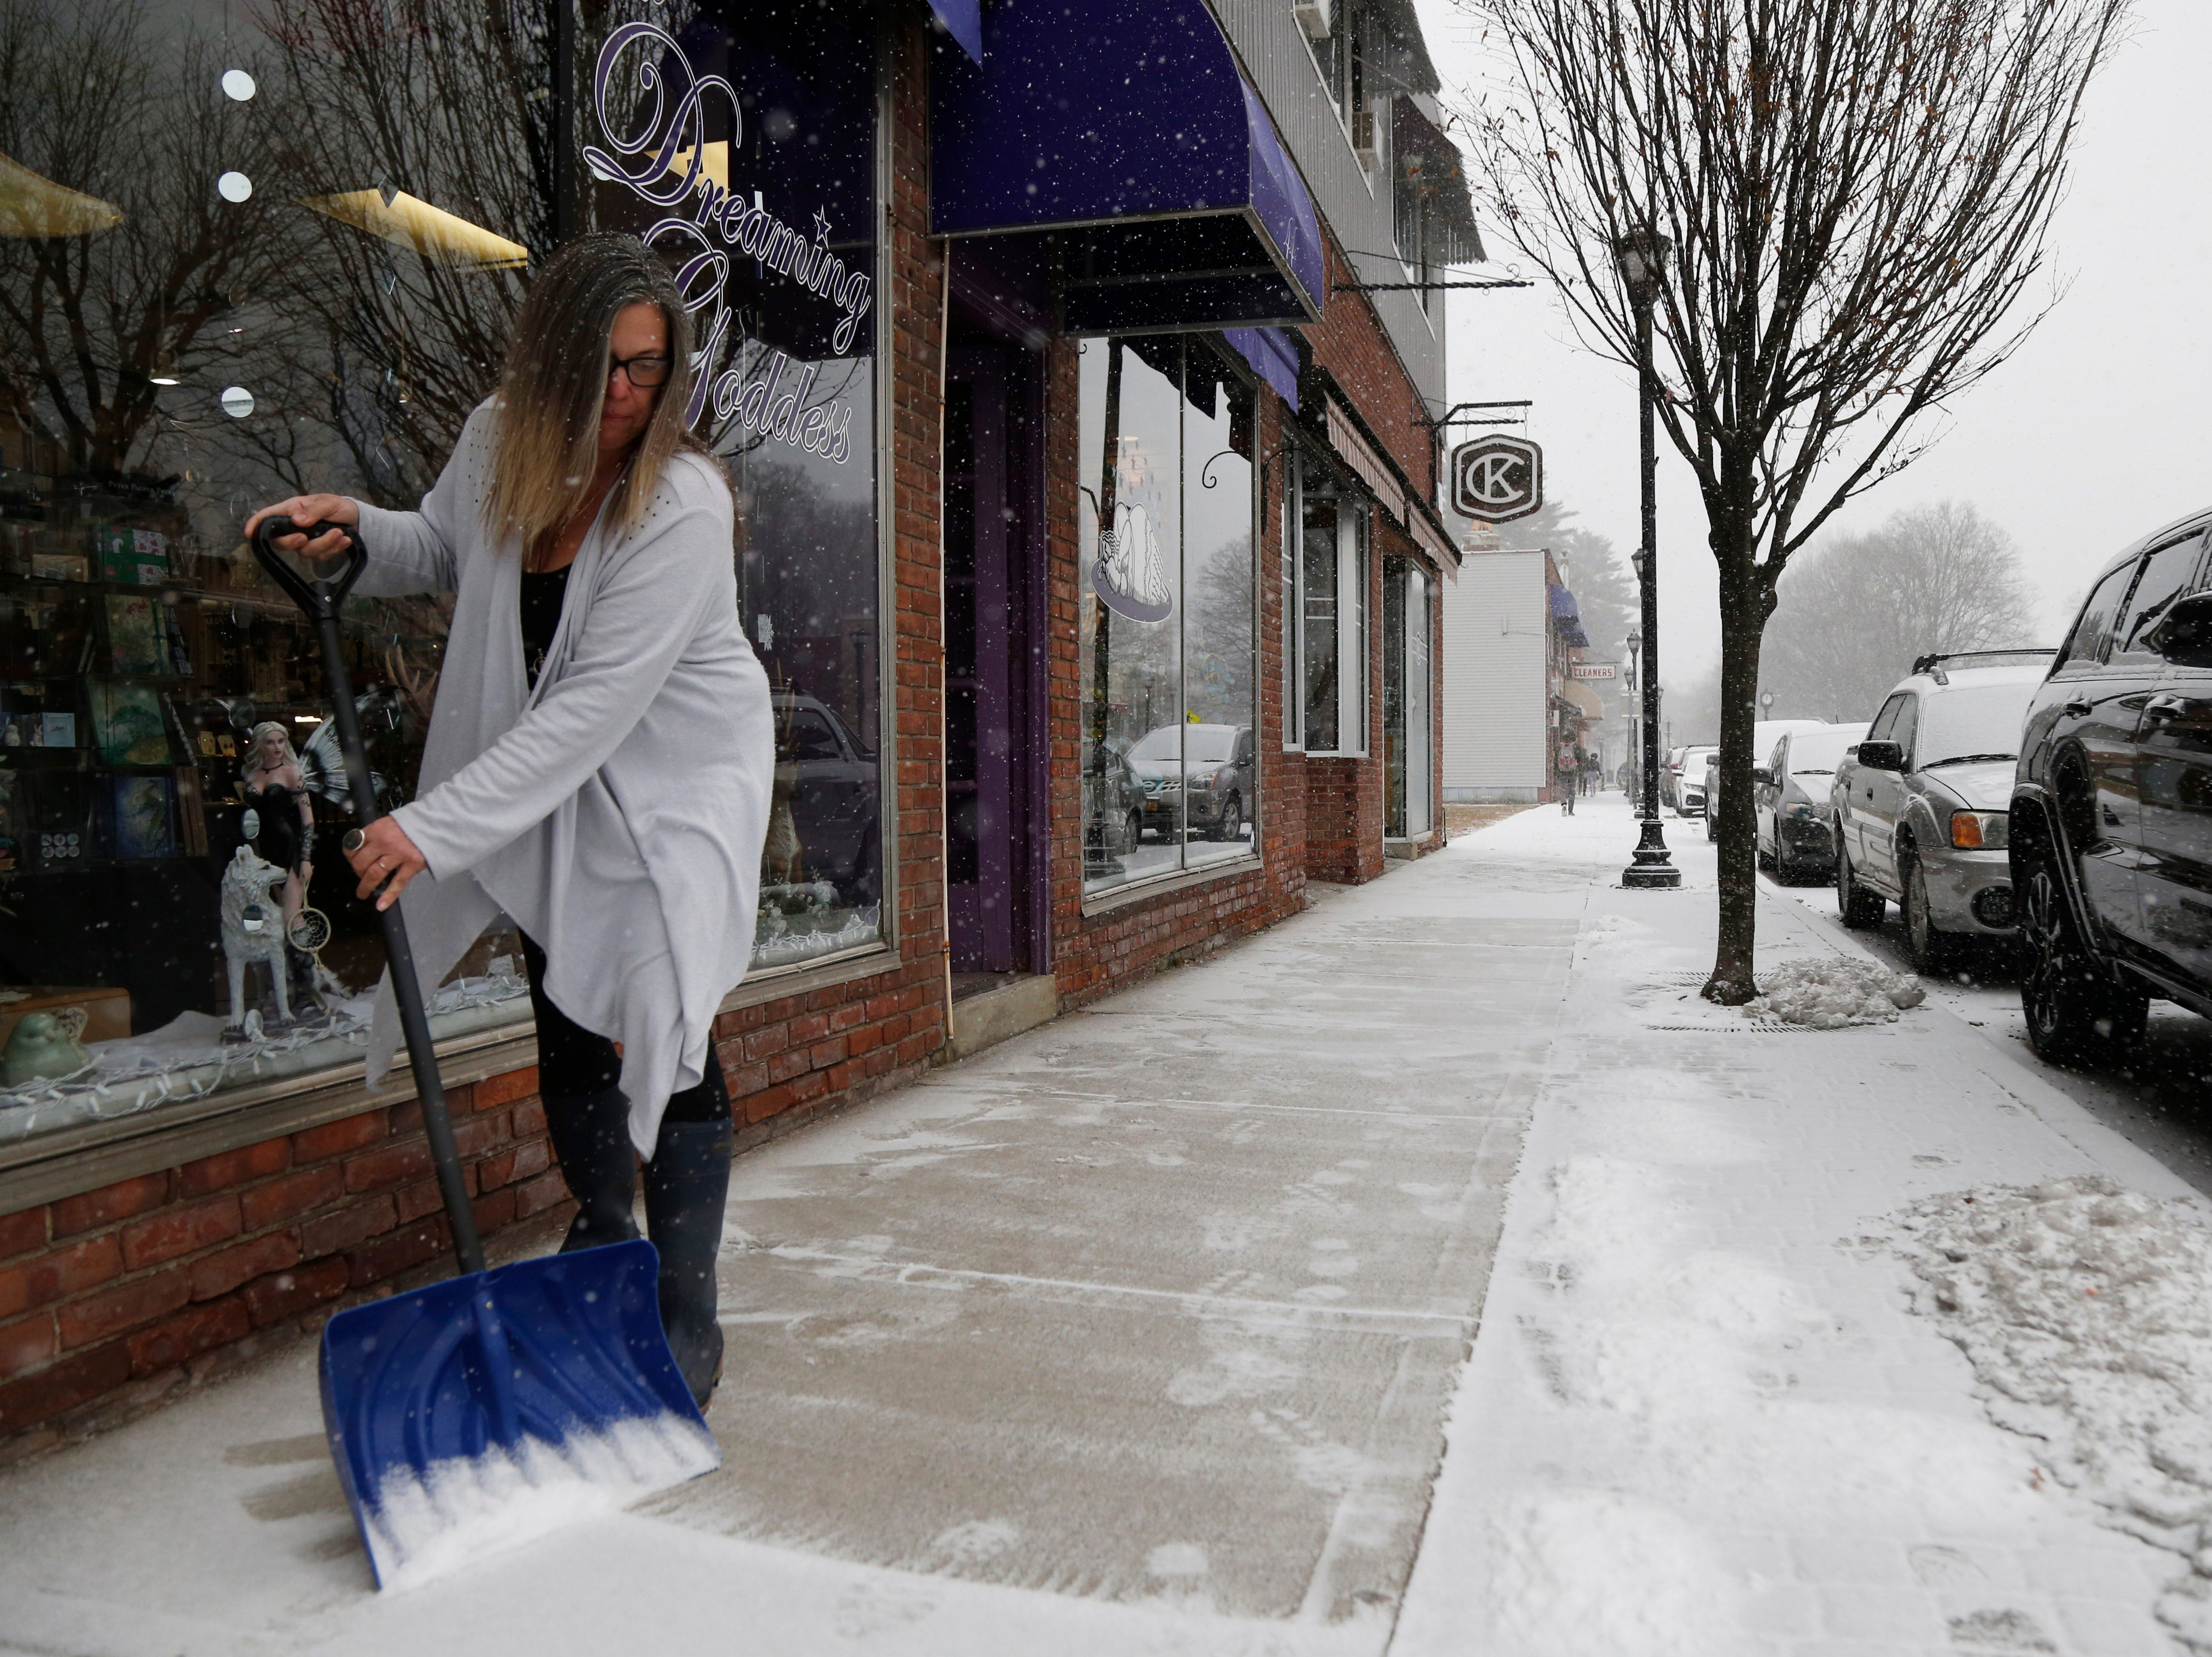 Shayleen Kutz clears snow from the sidewalk outside the Dreaming Goddess in the Arlington Business District of the Town of Poughkeepsie on February 12, 2019.